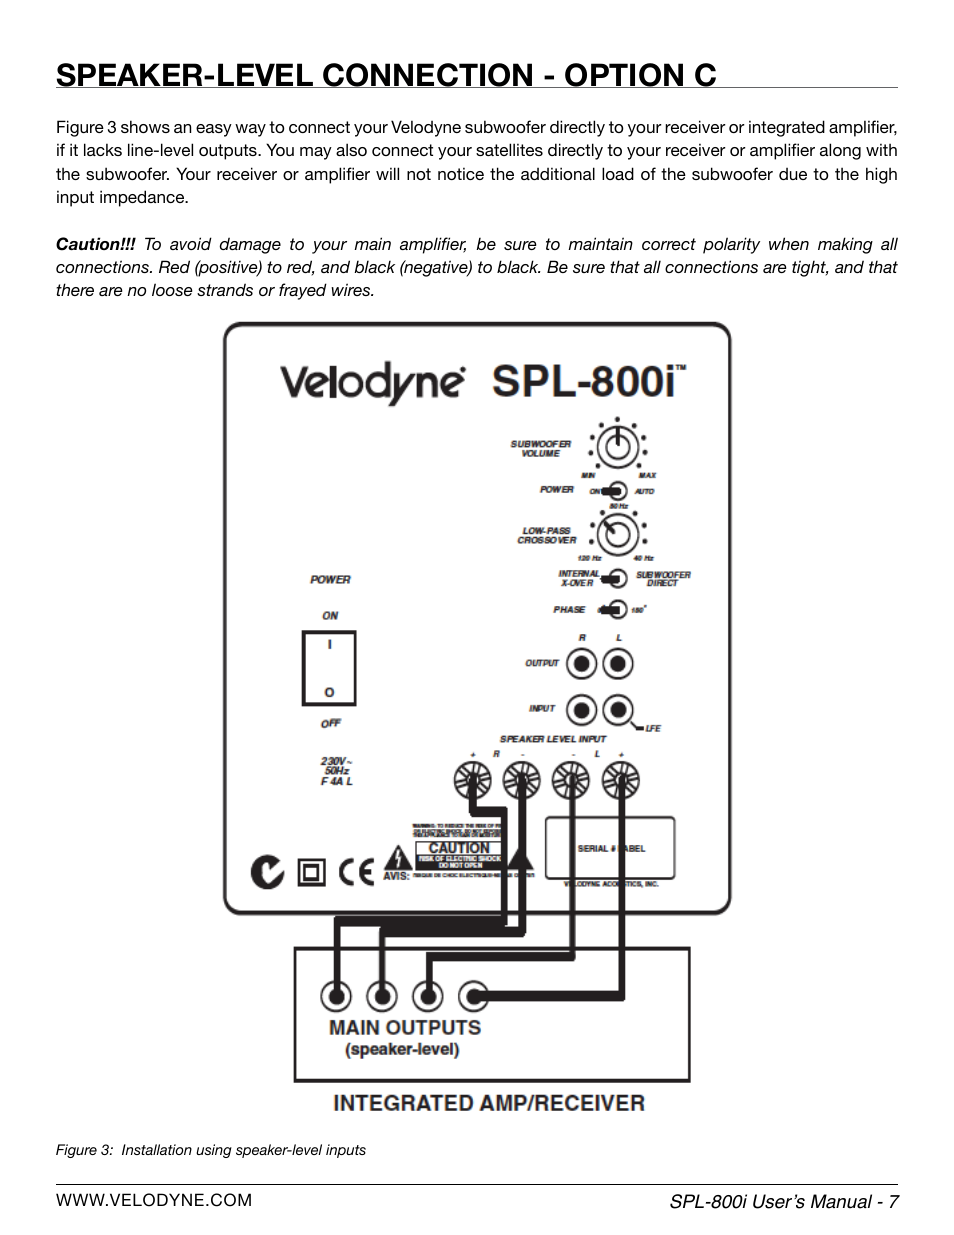 Velodyne Subwoofer Wiring Diagram Library Loudspeaker Building Guide Speaker Level Connection Option C Spl 800i User Manual Page